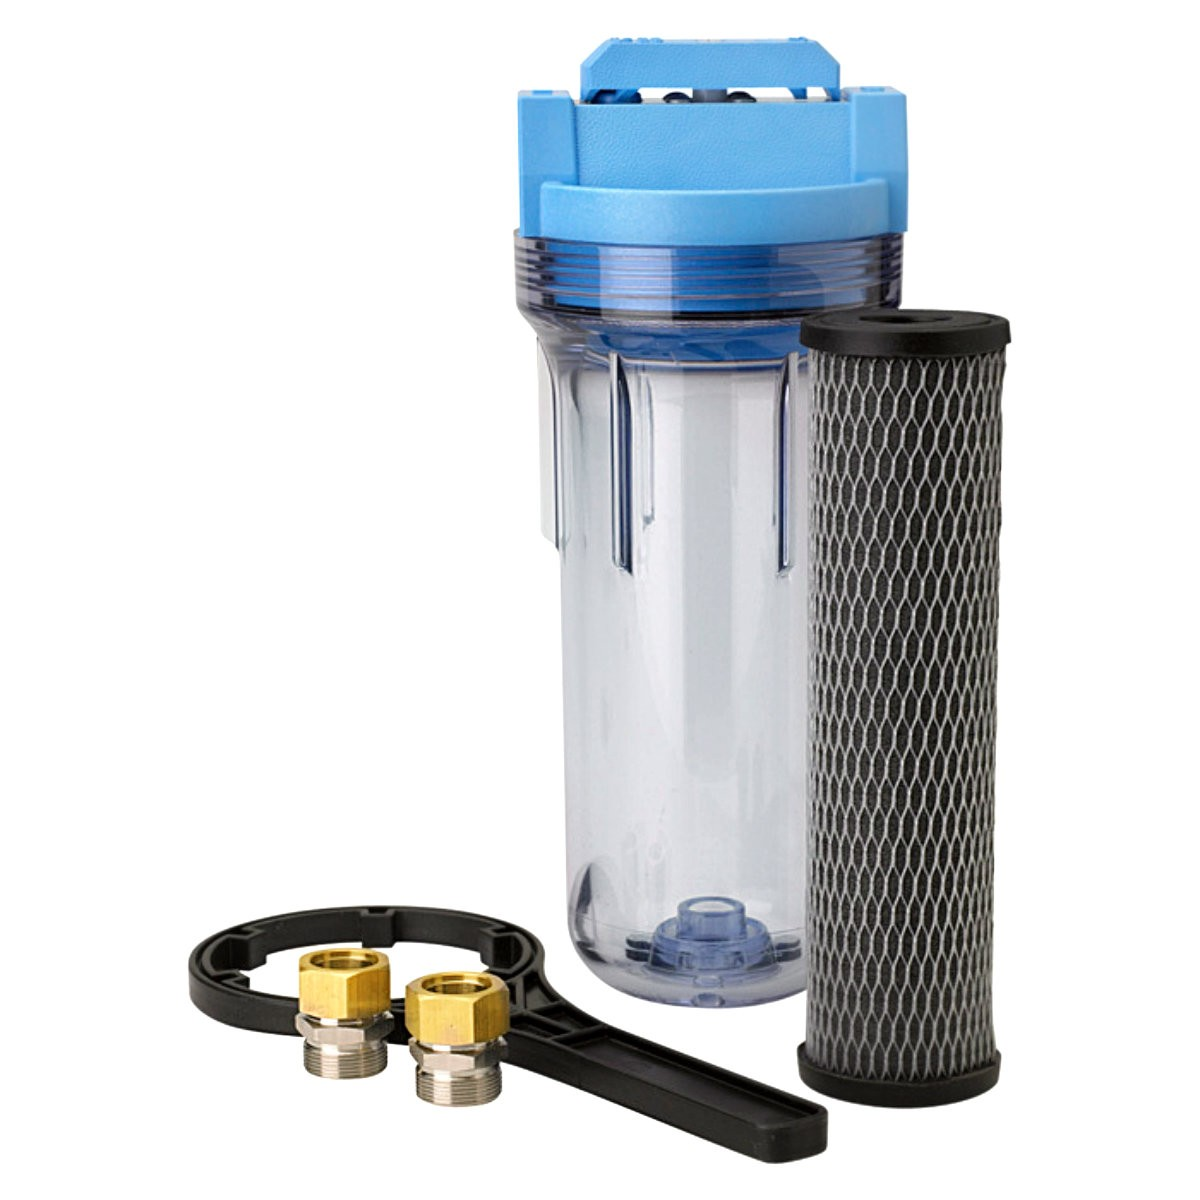 Whole House Water Sediment Filter Buy The Omni Pentair U25 S 05 Whole House Filter System Hardware